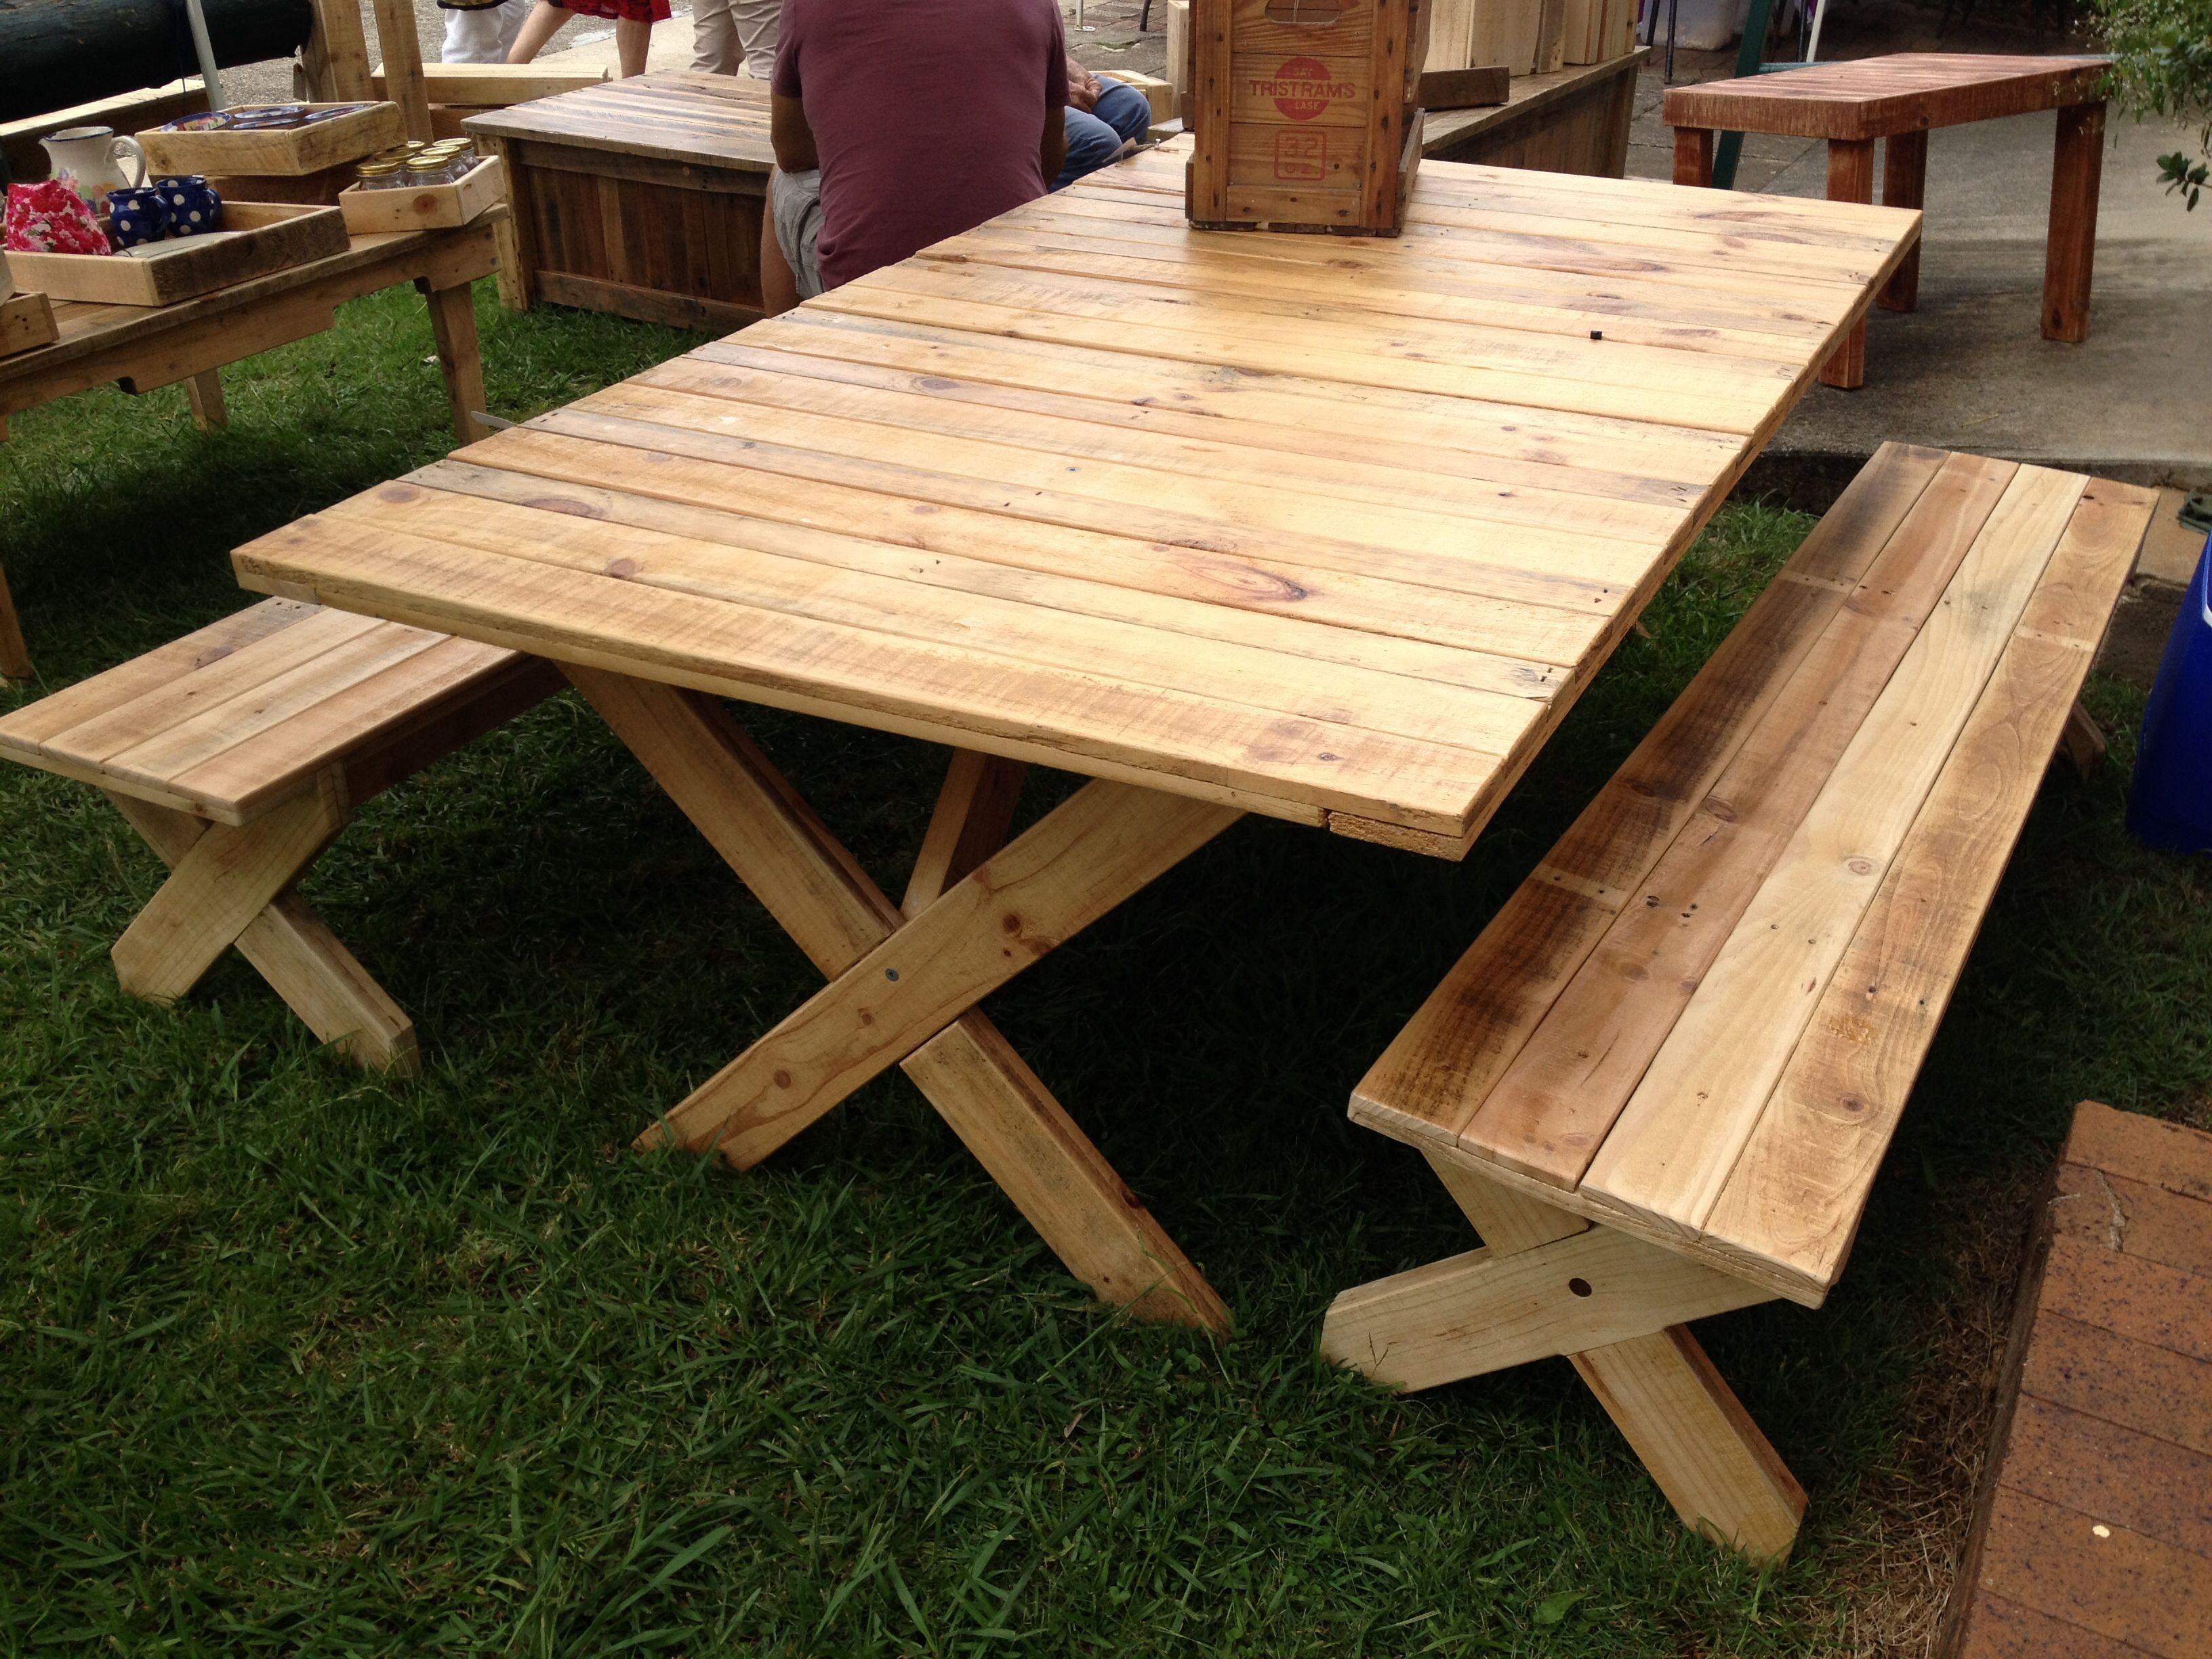 54 Easy Ways To Recycled Outdoor Pallet Furniture Ideas Easywaystorecycledoutdoor Pall Pallet Projects Furniture Wood Pallet Furniture Pallet Picnic Tables